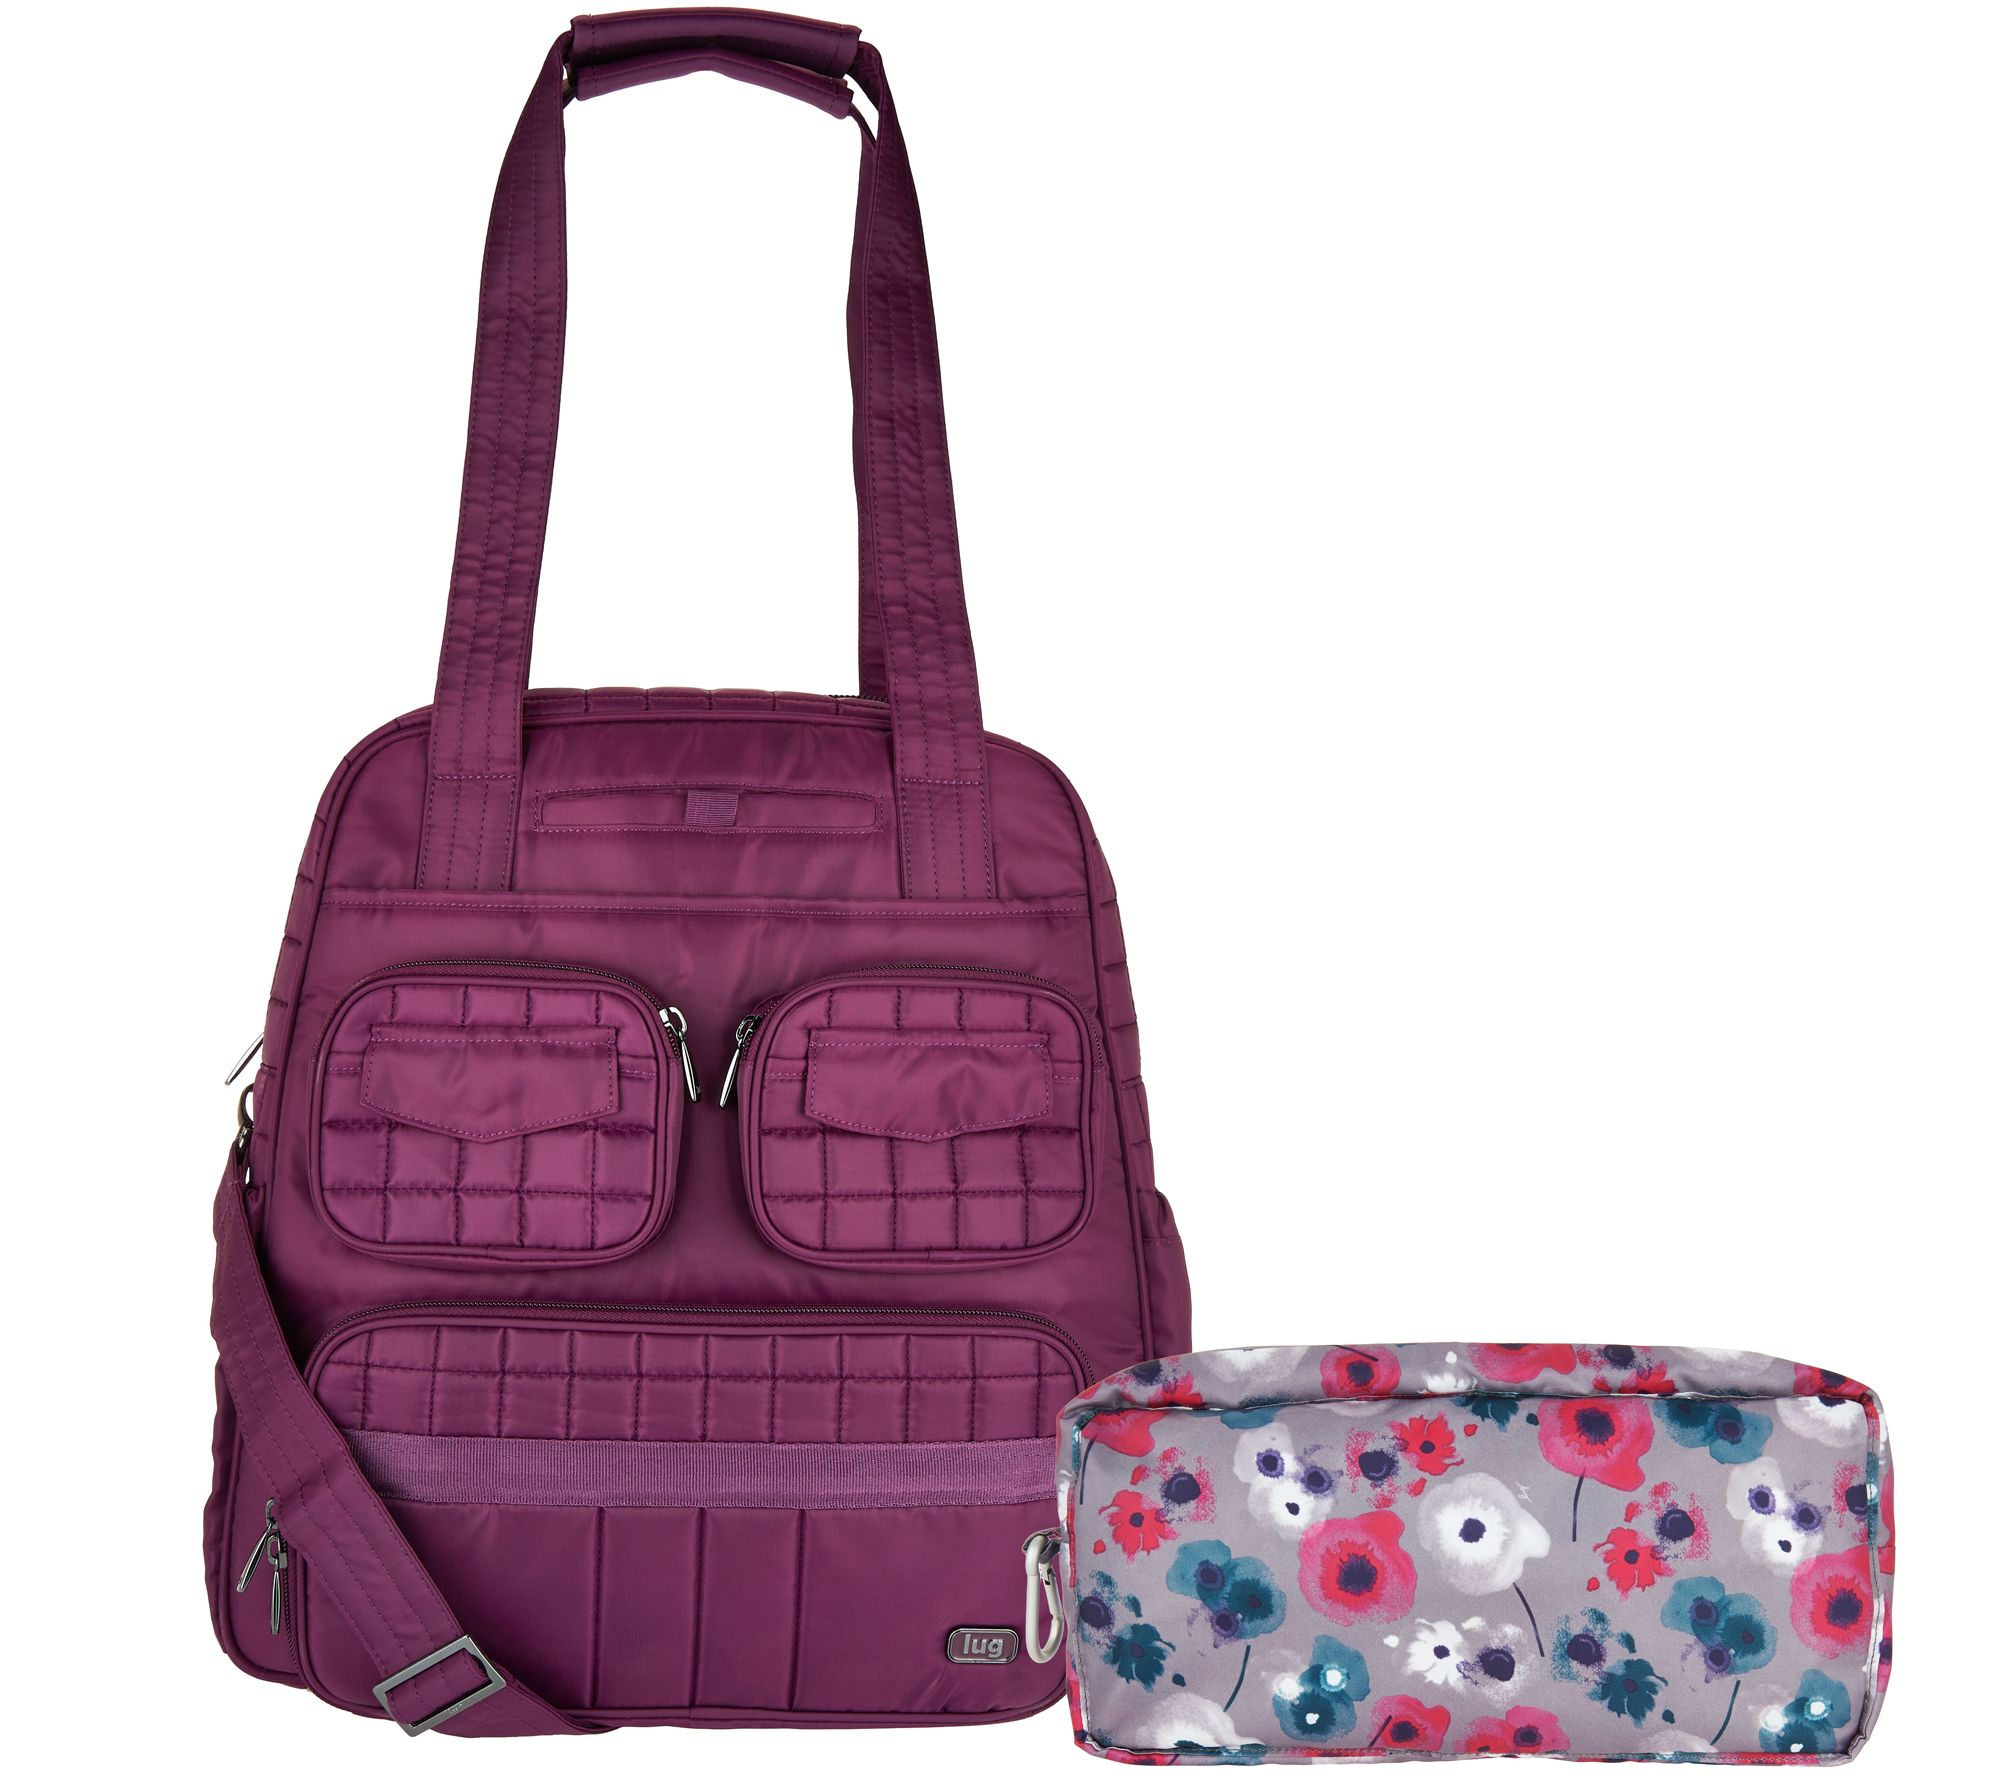 a32a04ec4 Lug Puddle Jumper Travel Bag with Packable Carry-All - Page 1 — QVC.com